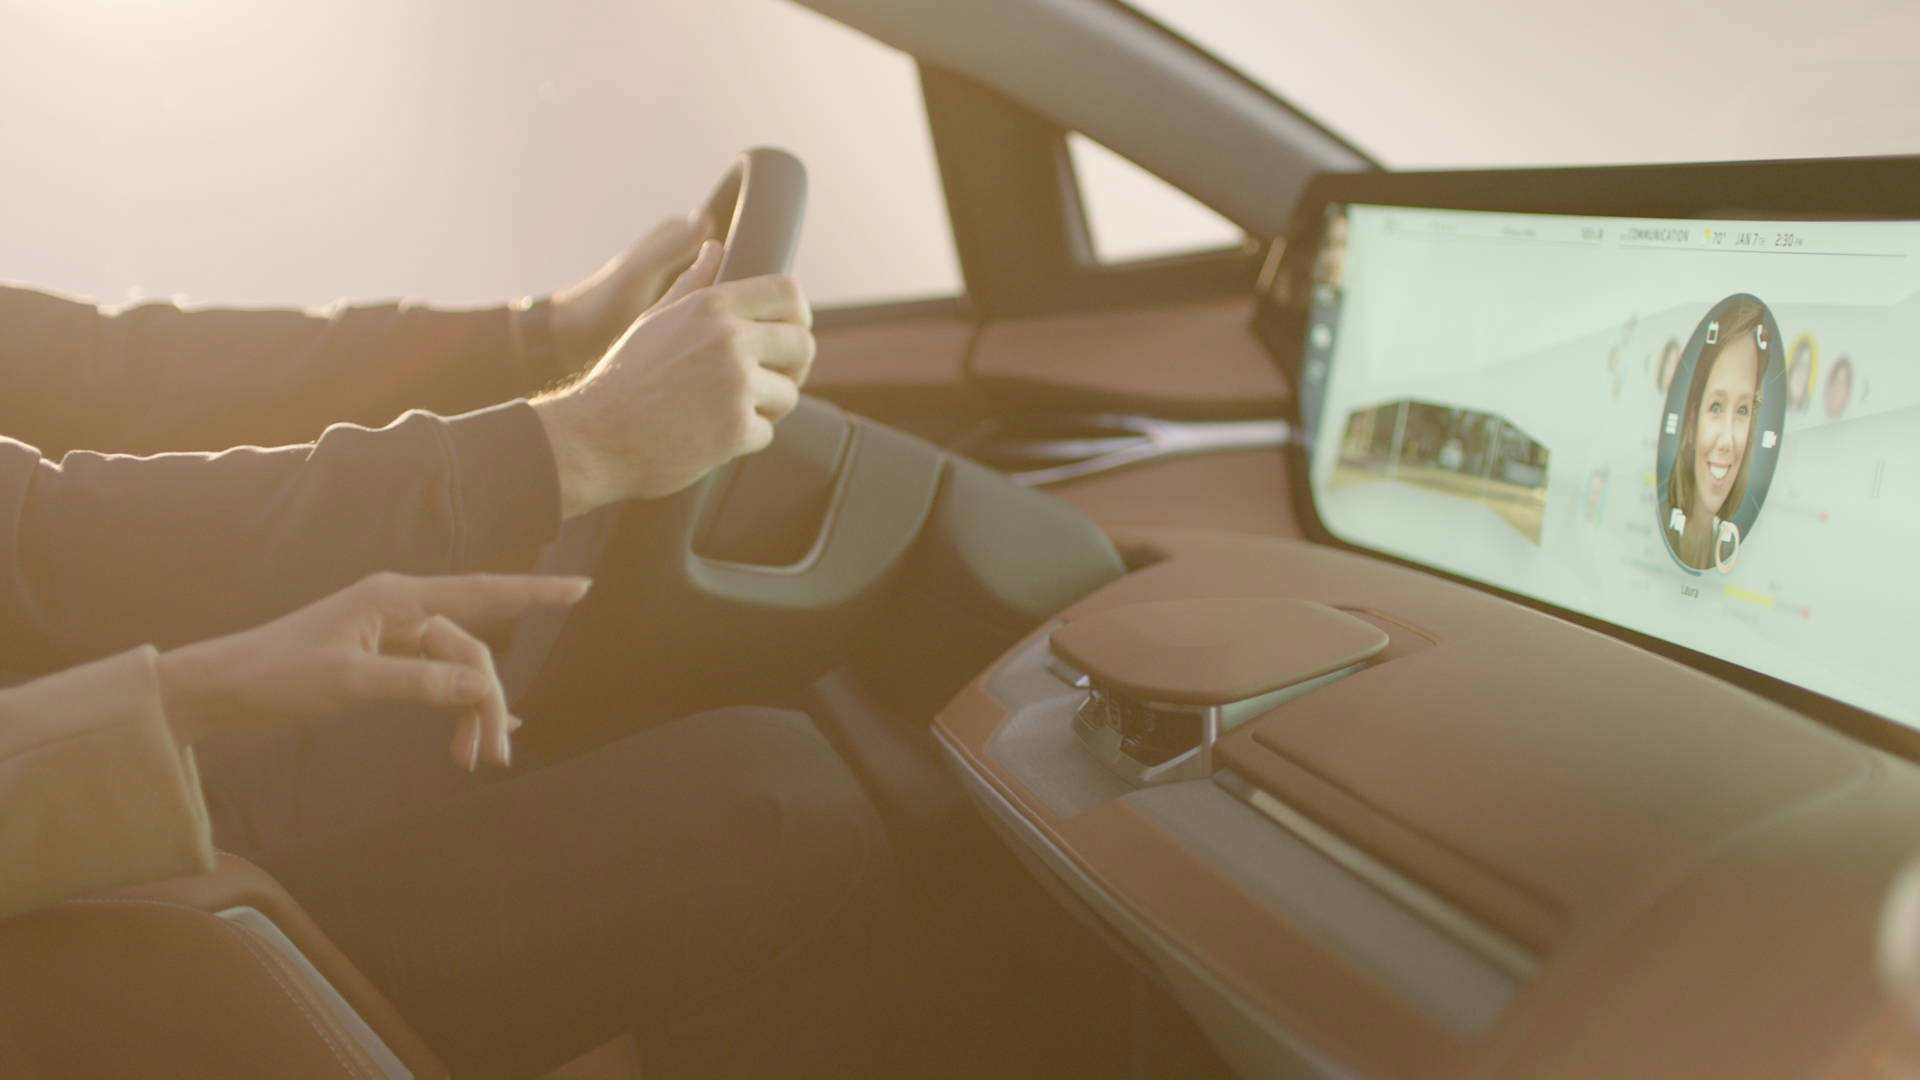 Byton-Concept-Interior-Air-Touch